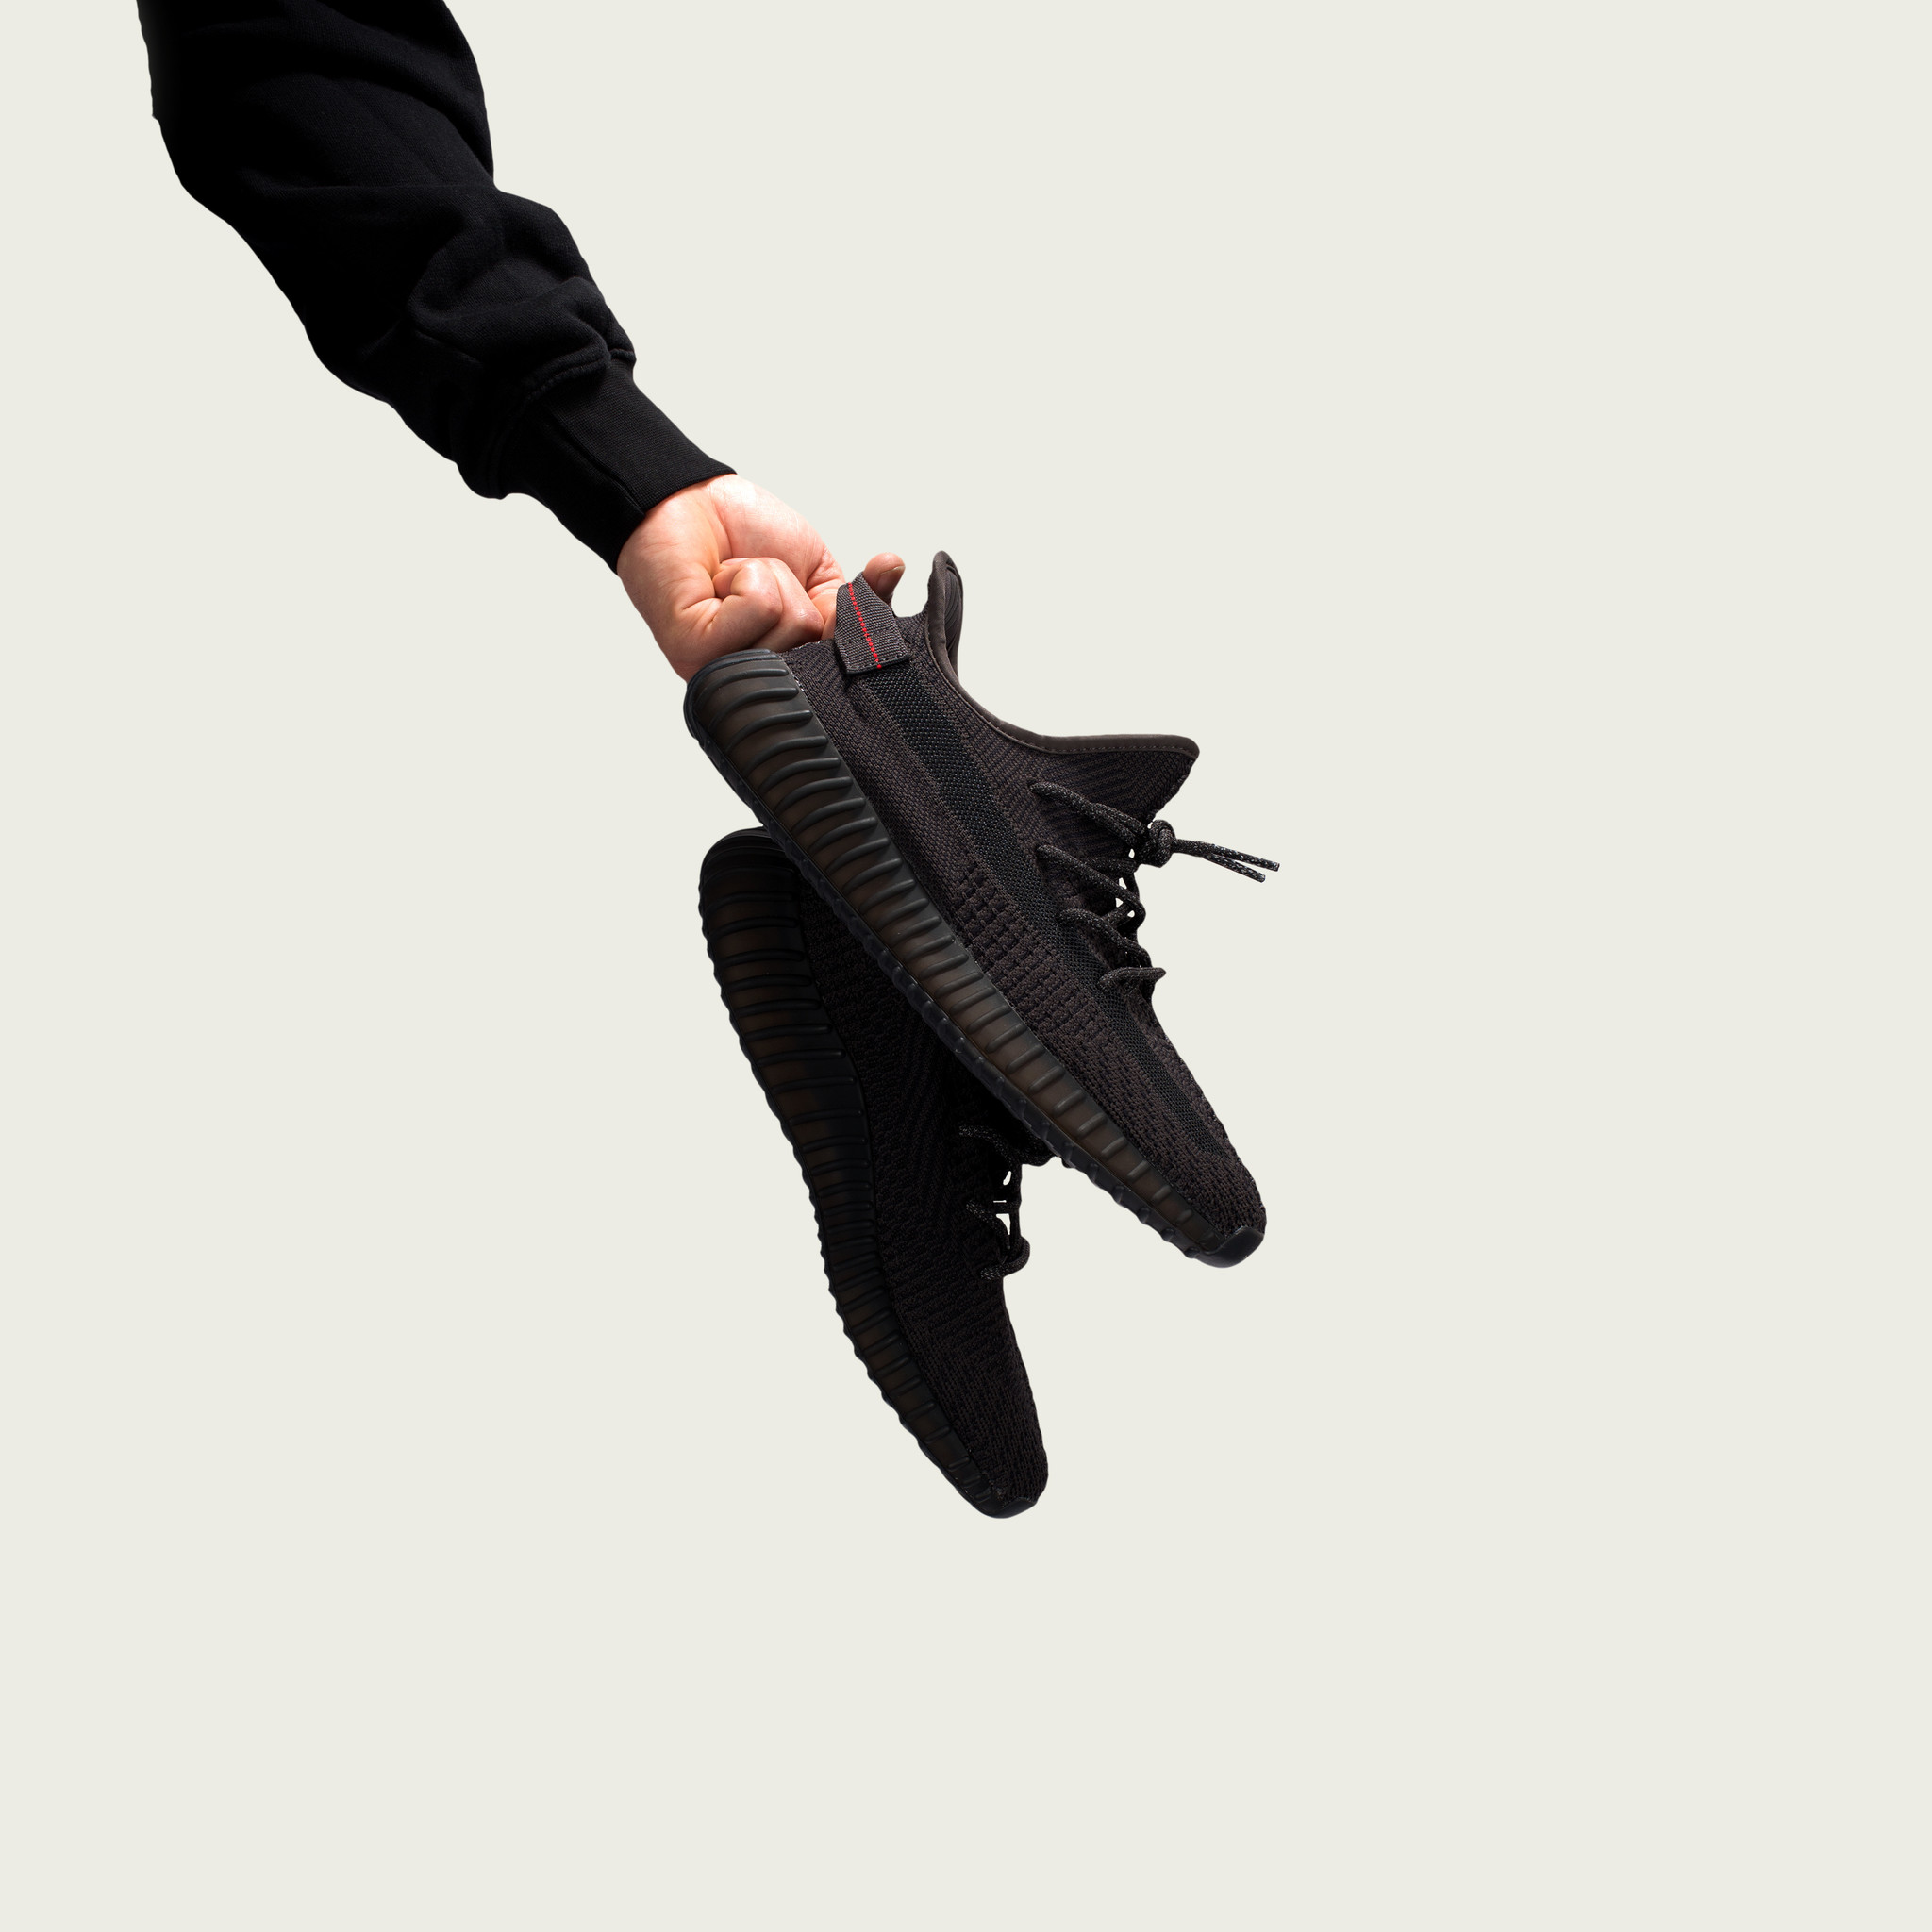 ADIDAS YEEZY BOOST 350 V2 'BLACK' RAFFLE IS CLOSED